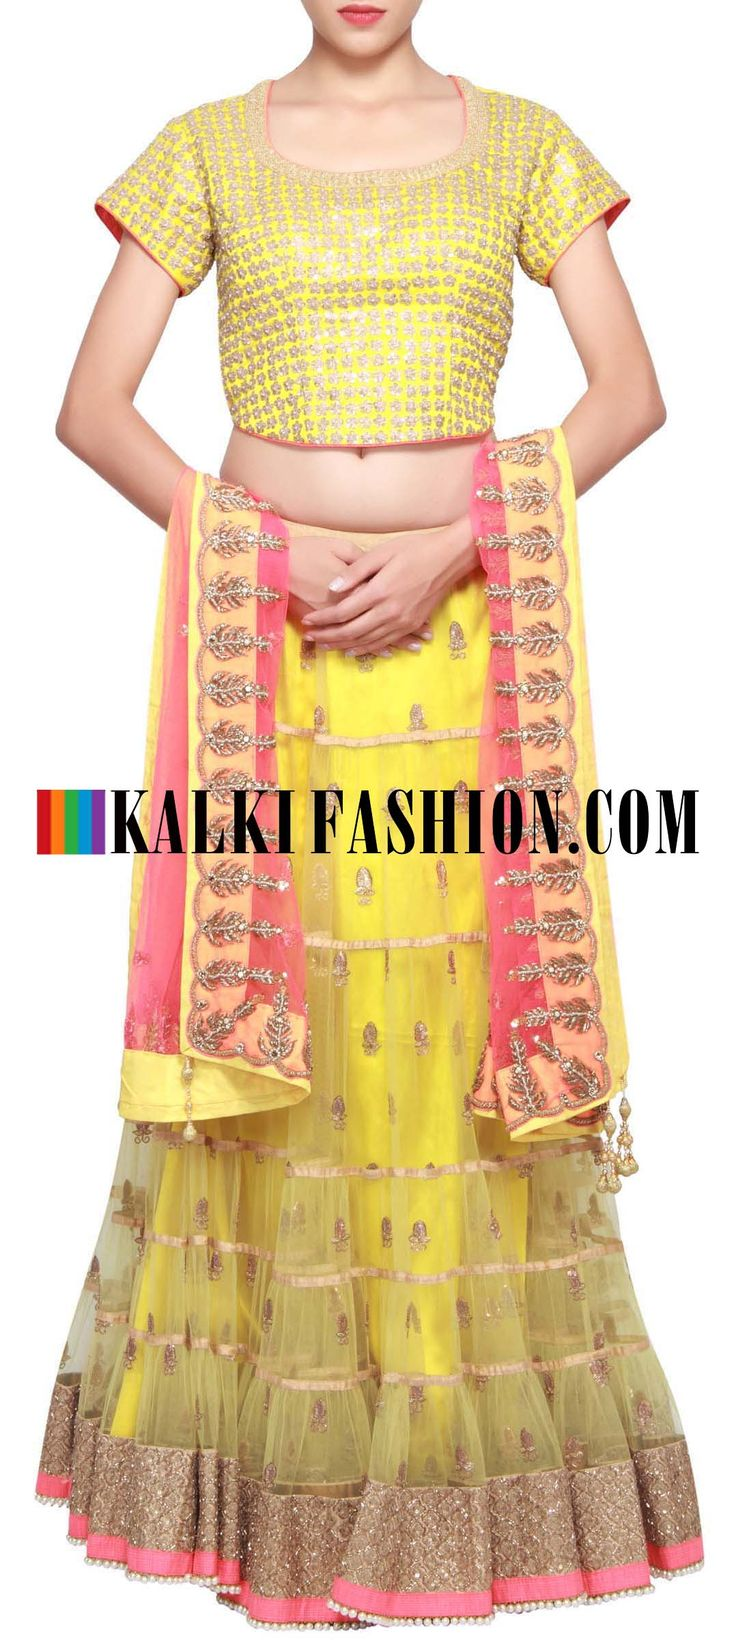 Get this beautiful lehenga here: http://www.kalkifashion.com/green-net-lehenga-embellished-in-sequence-and-zari-embroidery-only-on-kalki.html Free shipping worldwide.